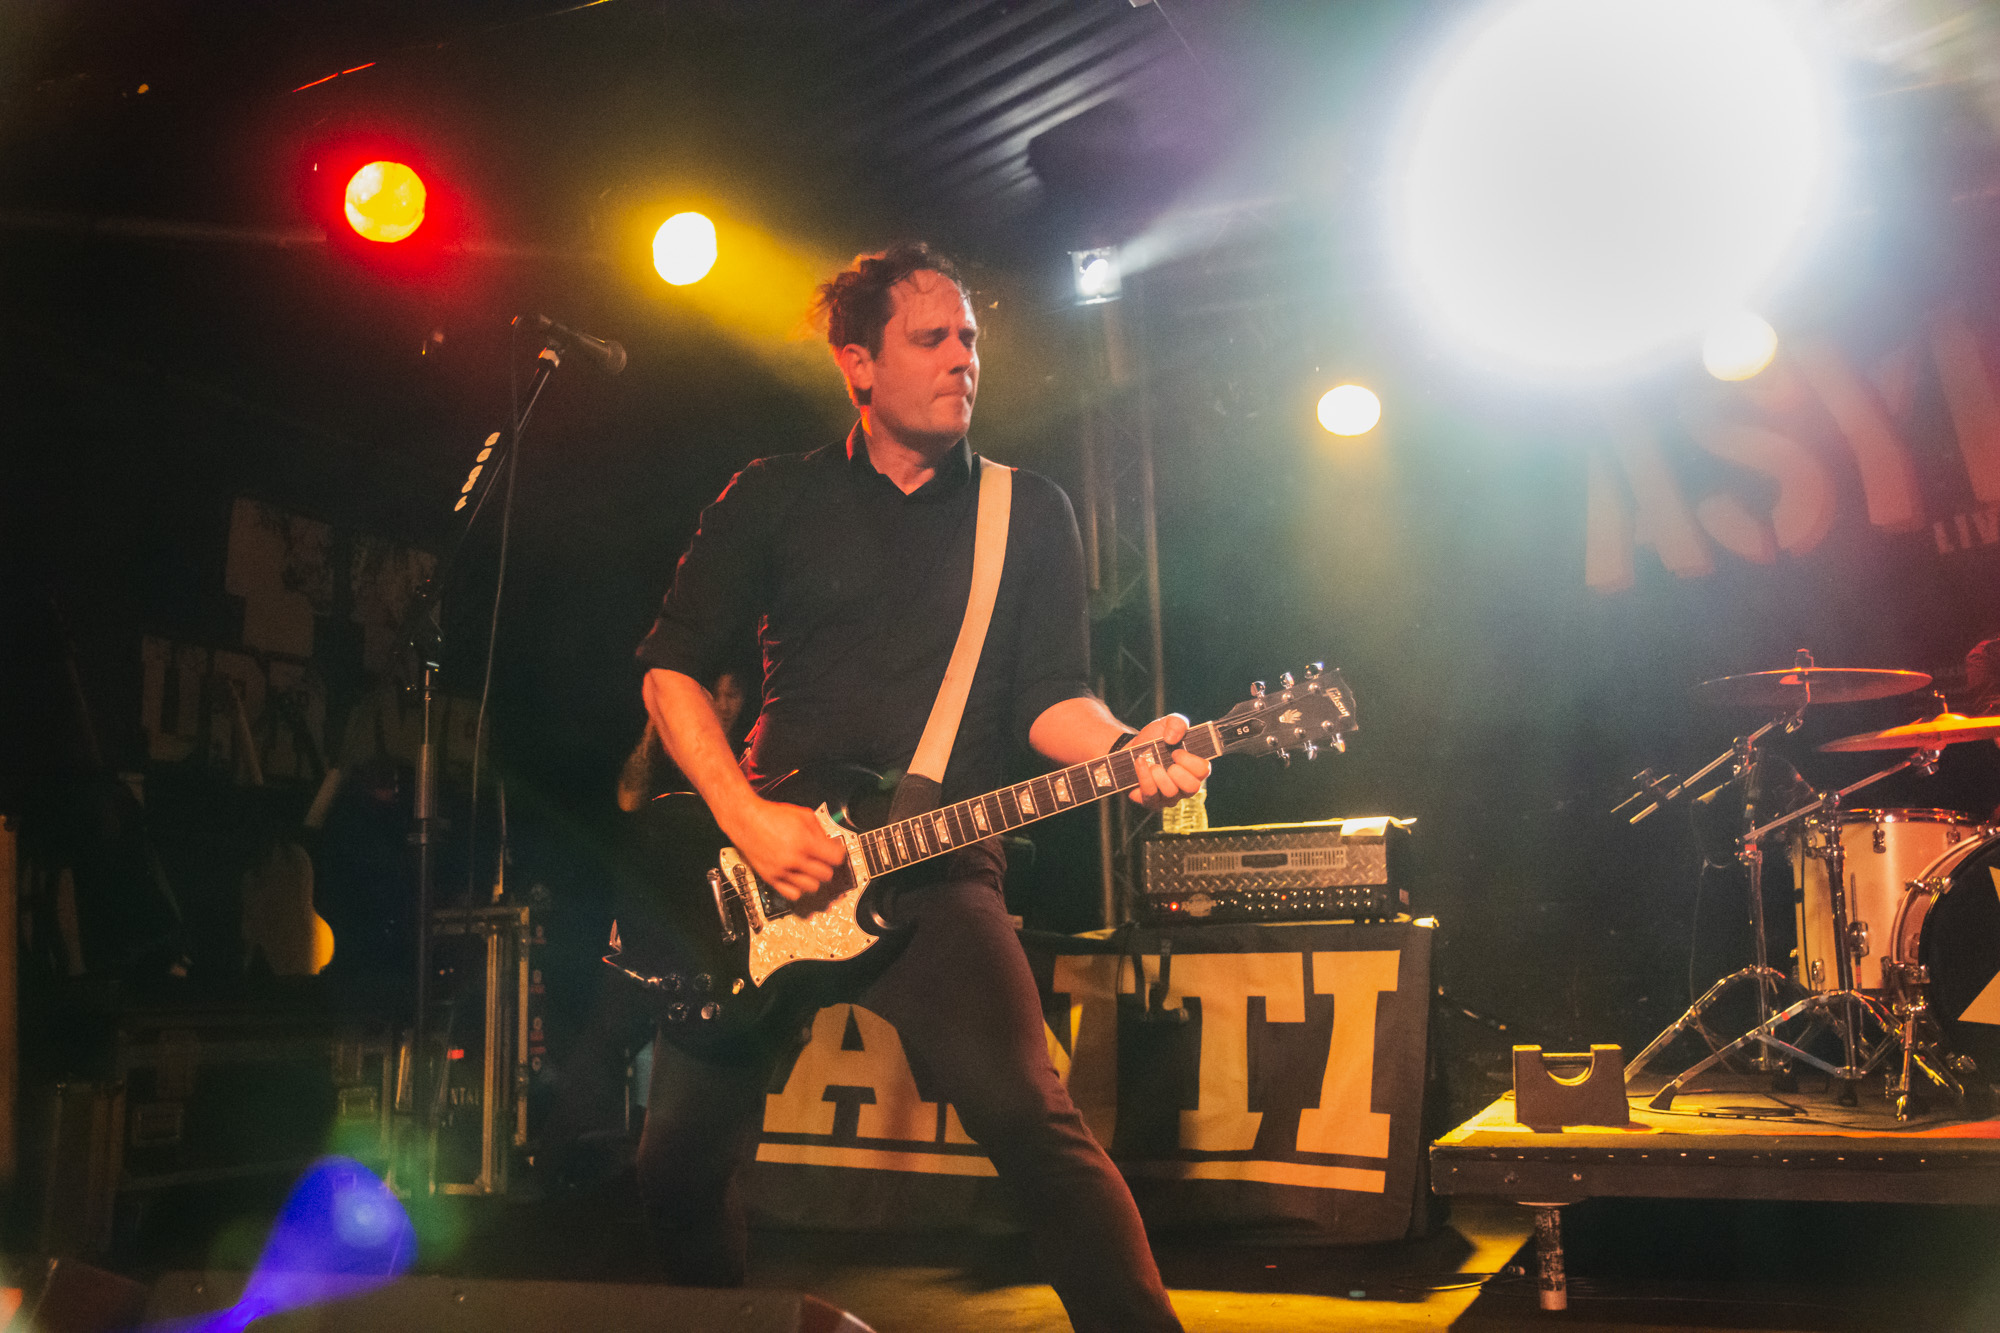 Anti-Flag-The-Asylum-Birmingham_20181030_14.jpg